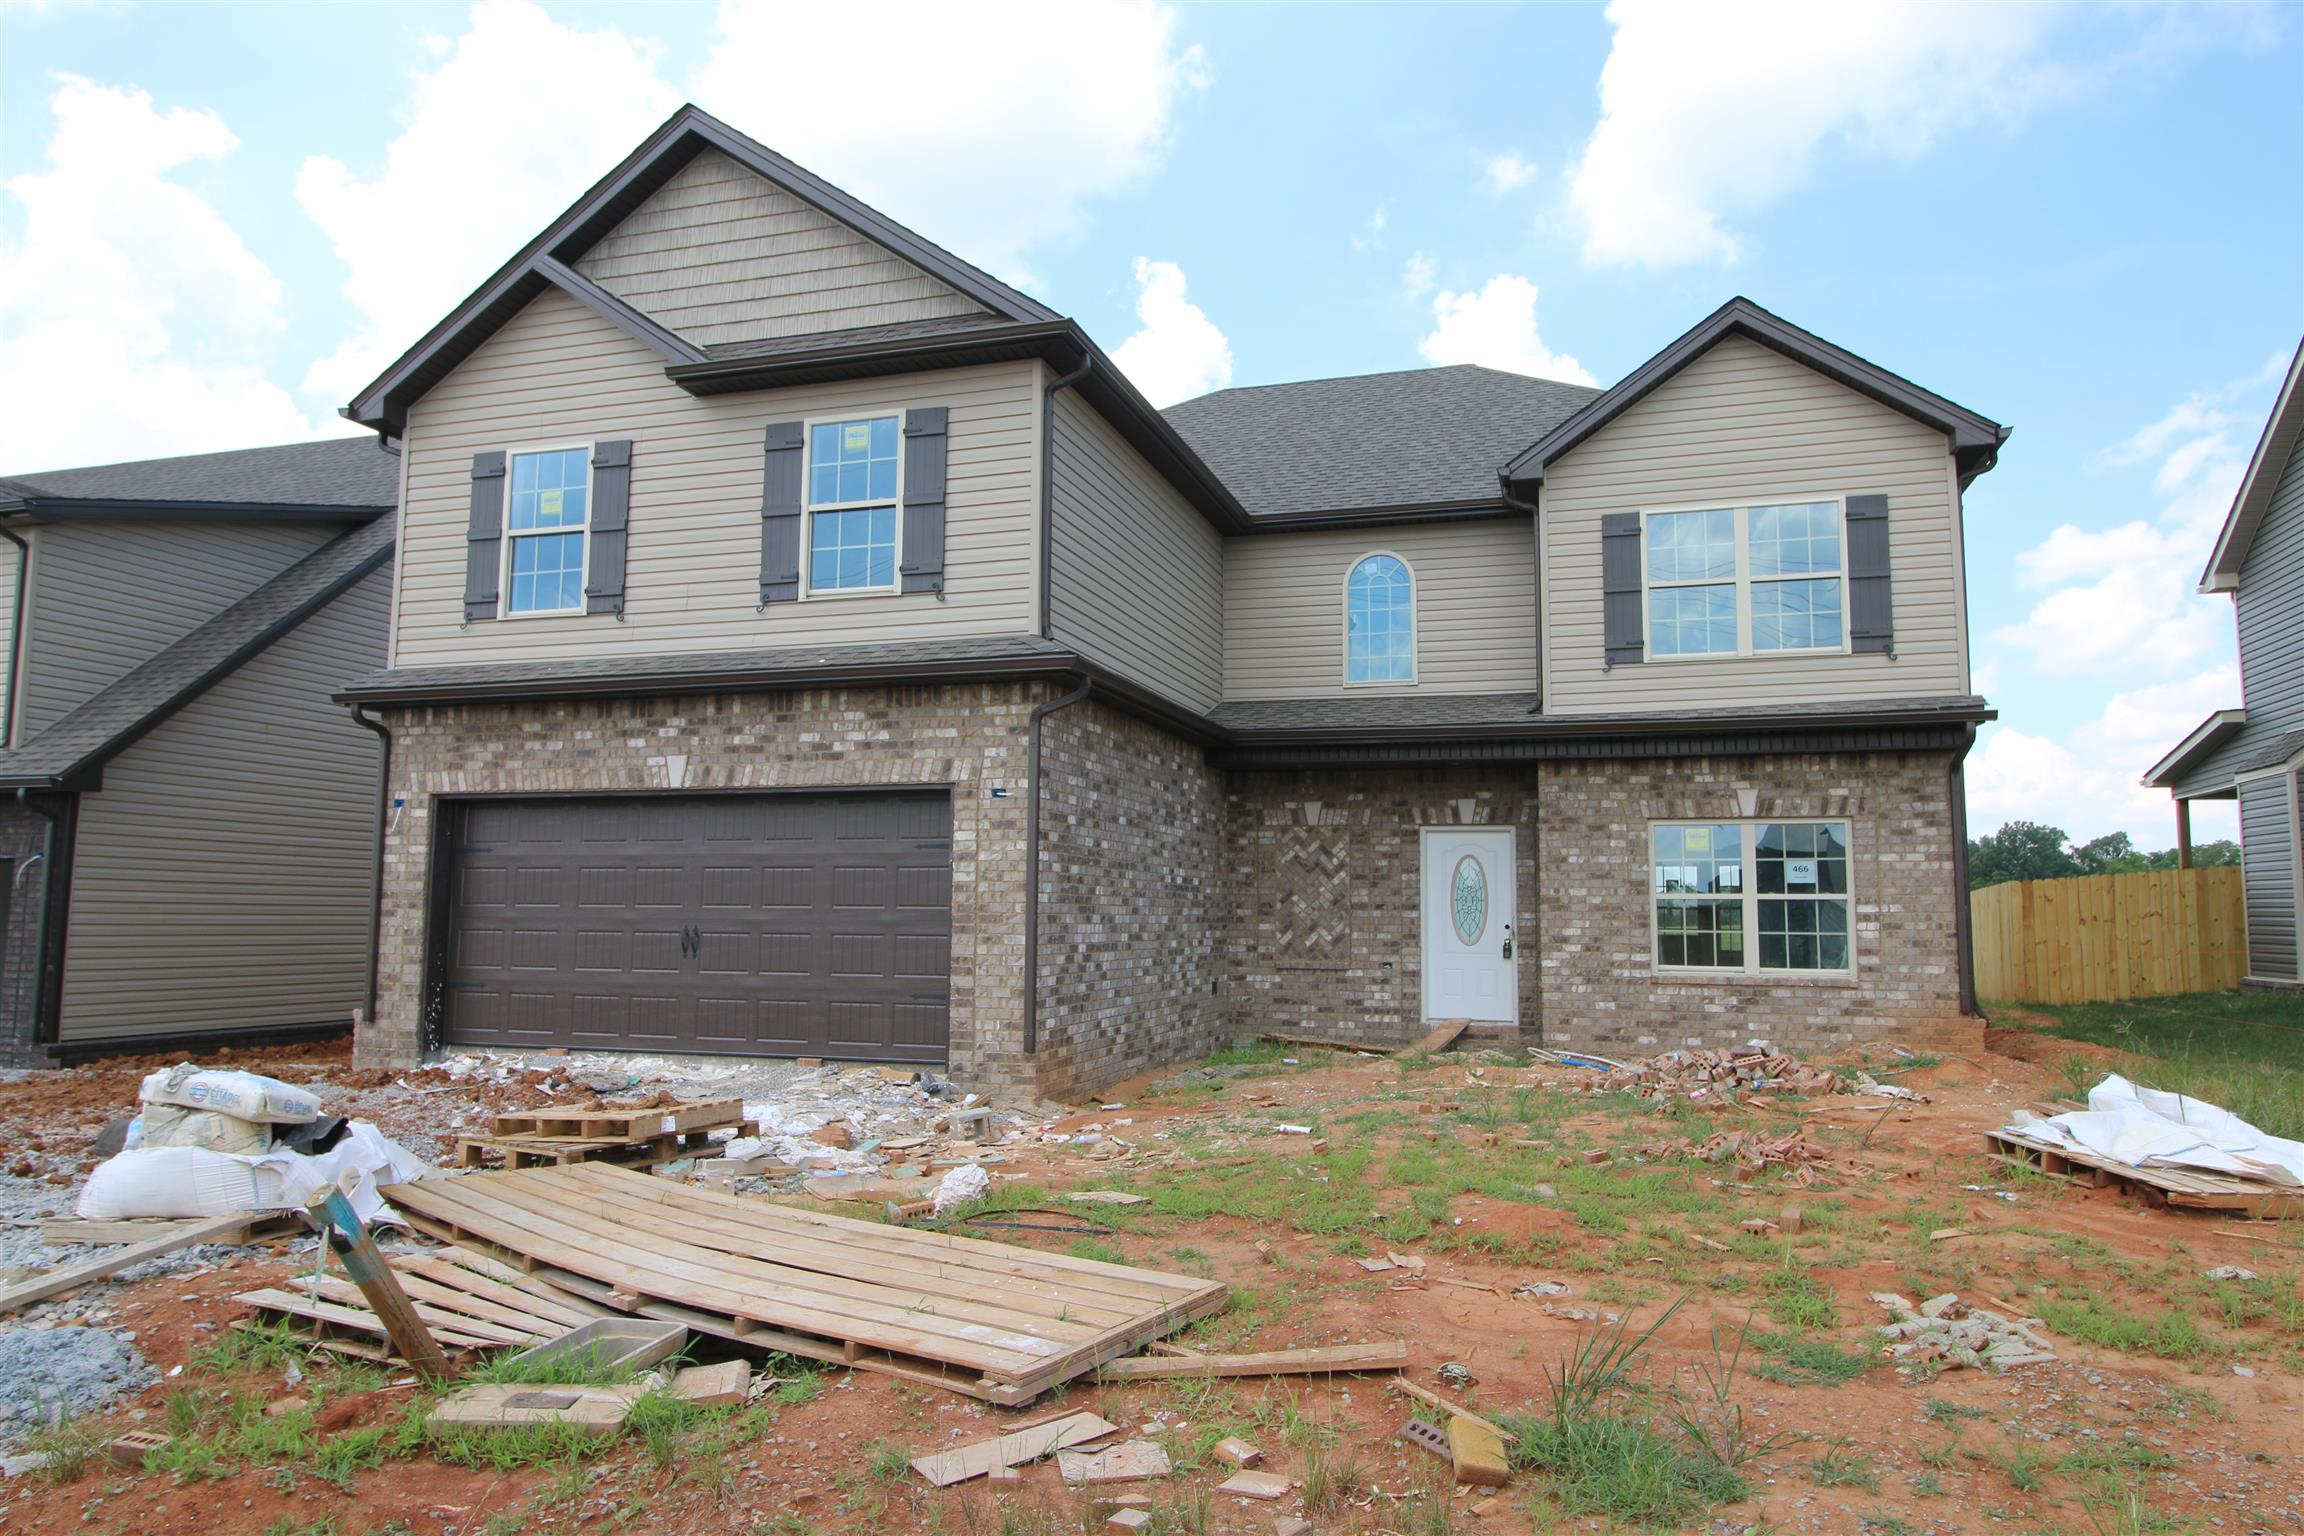 466 Summerfield, Clarksville, TN 37040 - Clarksville, TN real estate listing